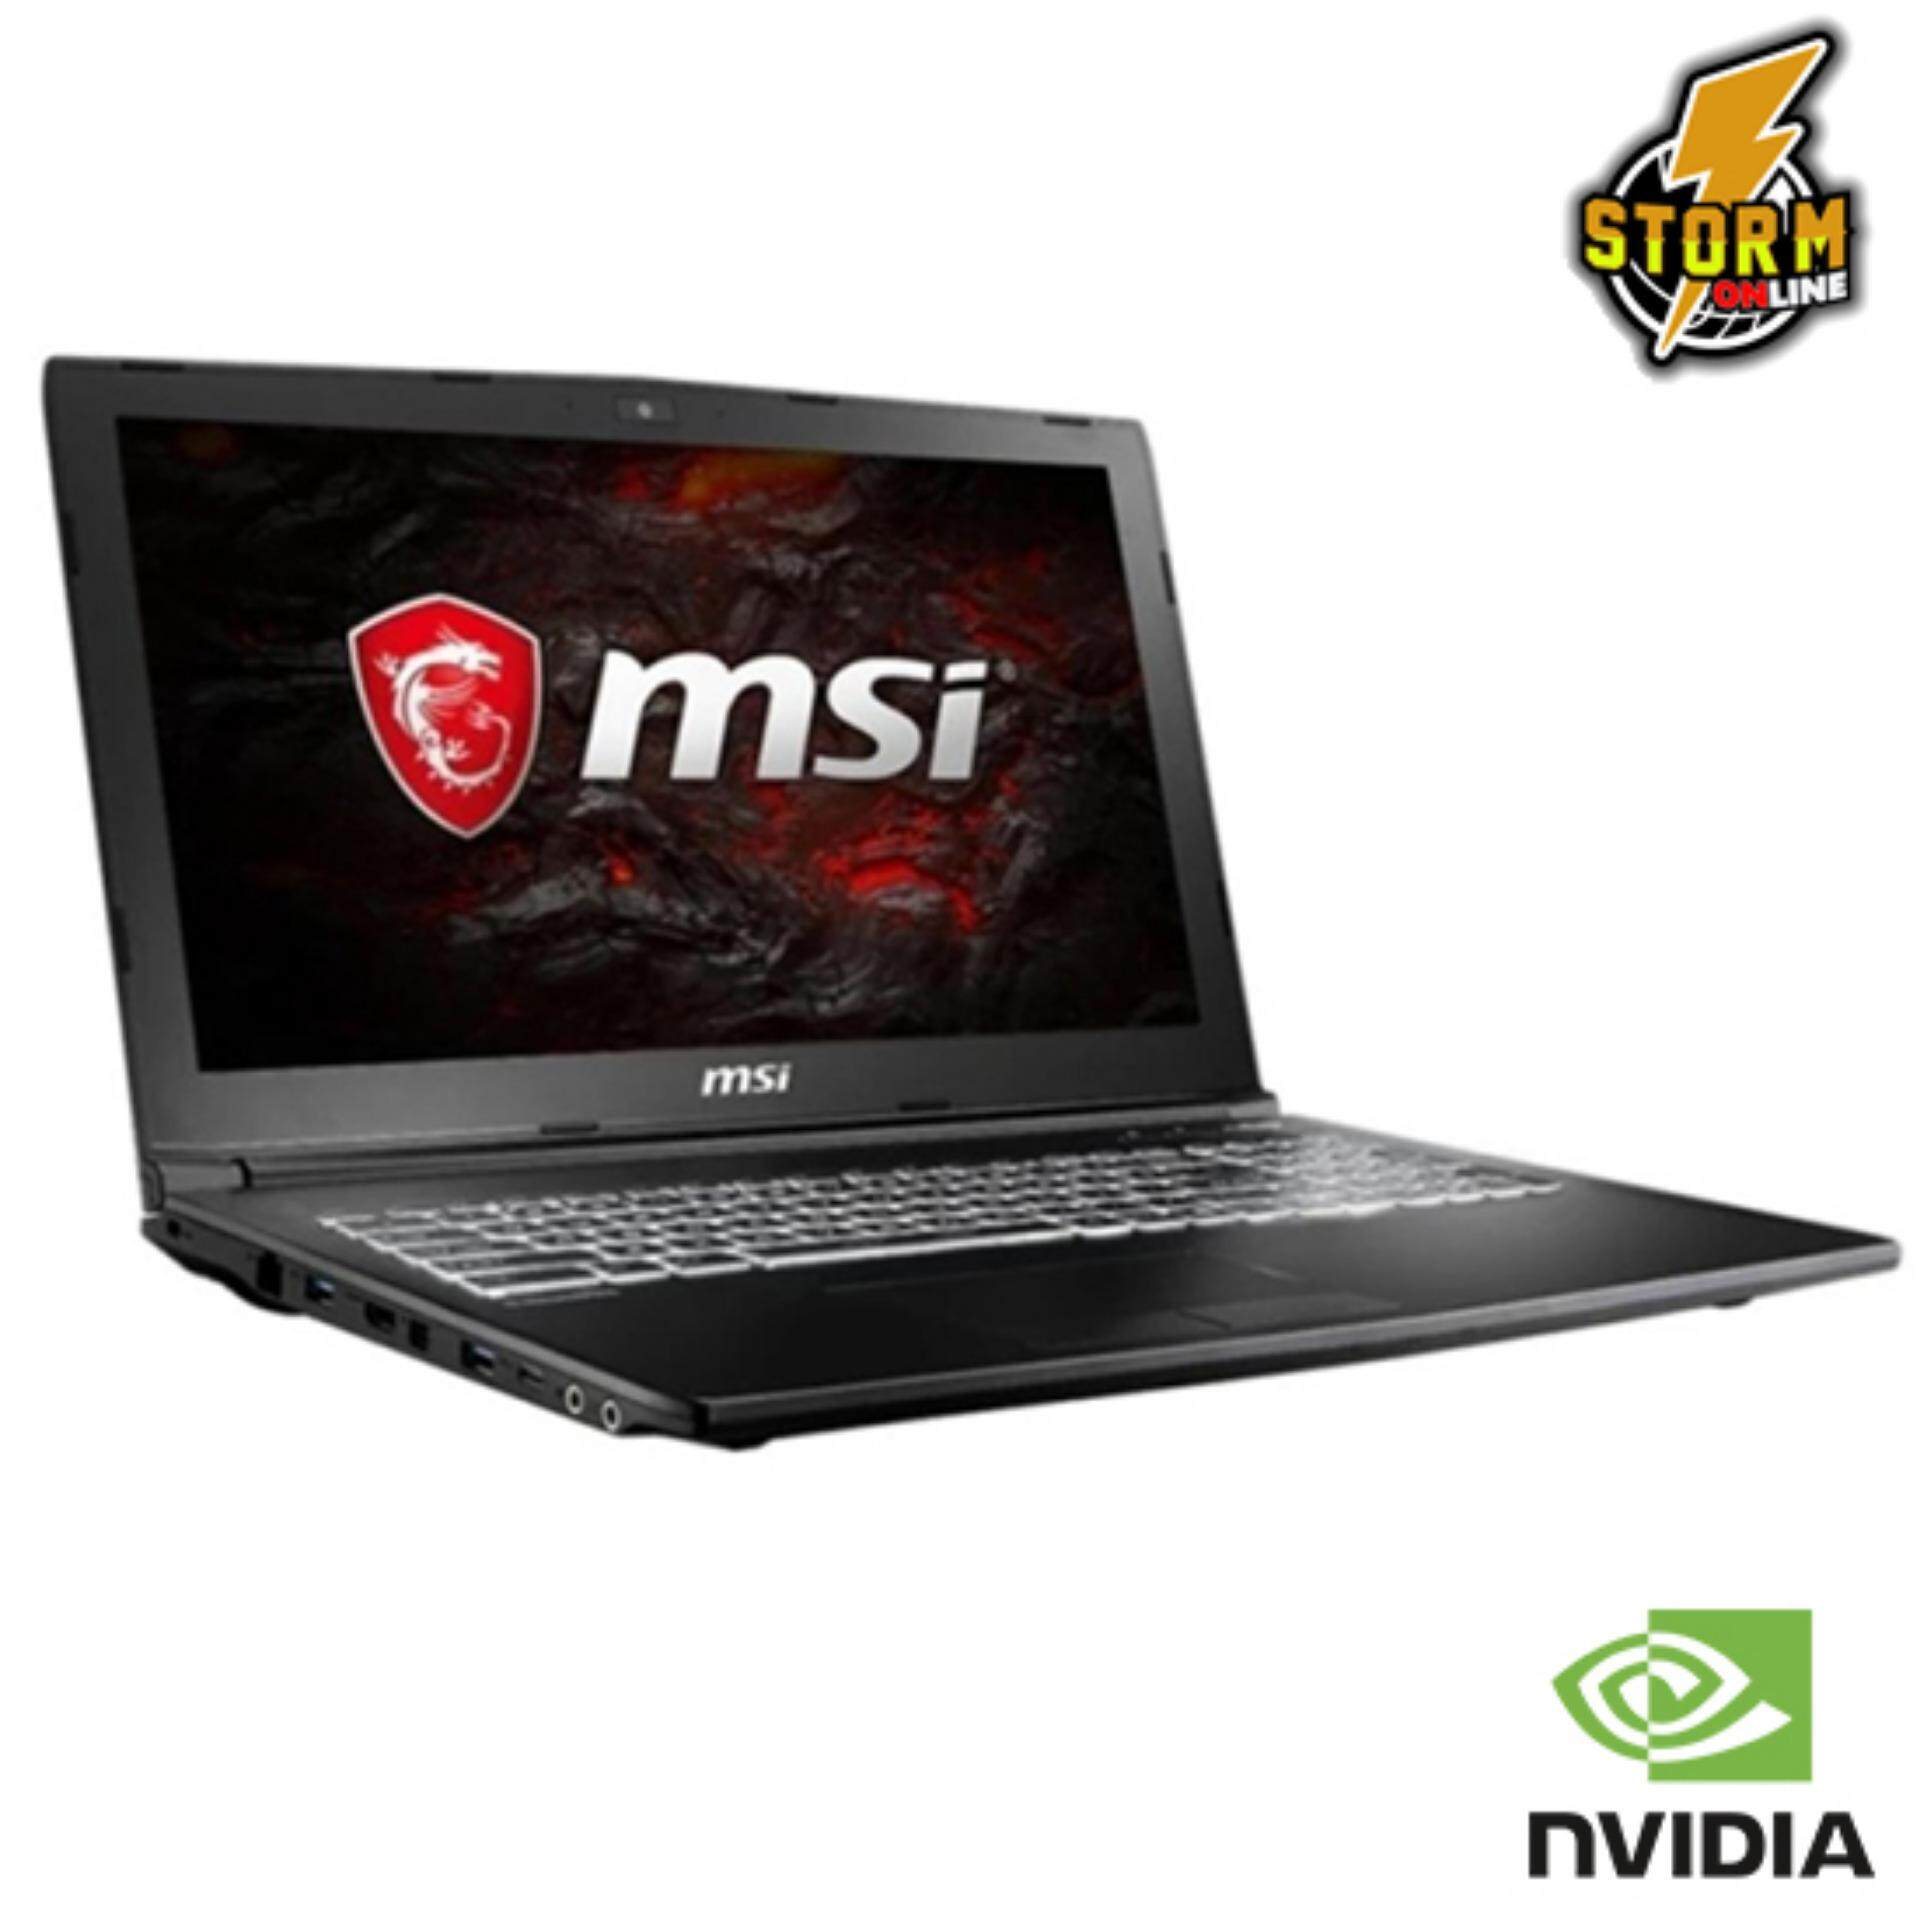 MSI GL62M 7RDX-2605MY 15.6 FHD Gaming Notebook (i7-7700HQ/4GB/1TB/NV GTX1050 4GB) + Free MSI Backpack Malaysia